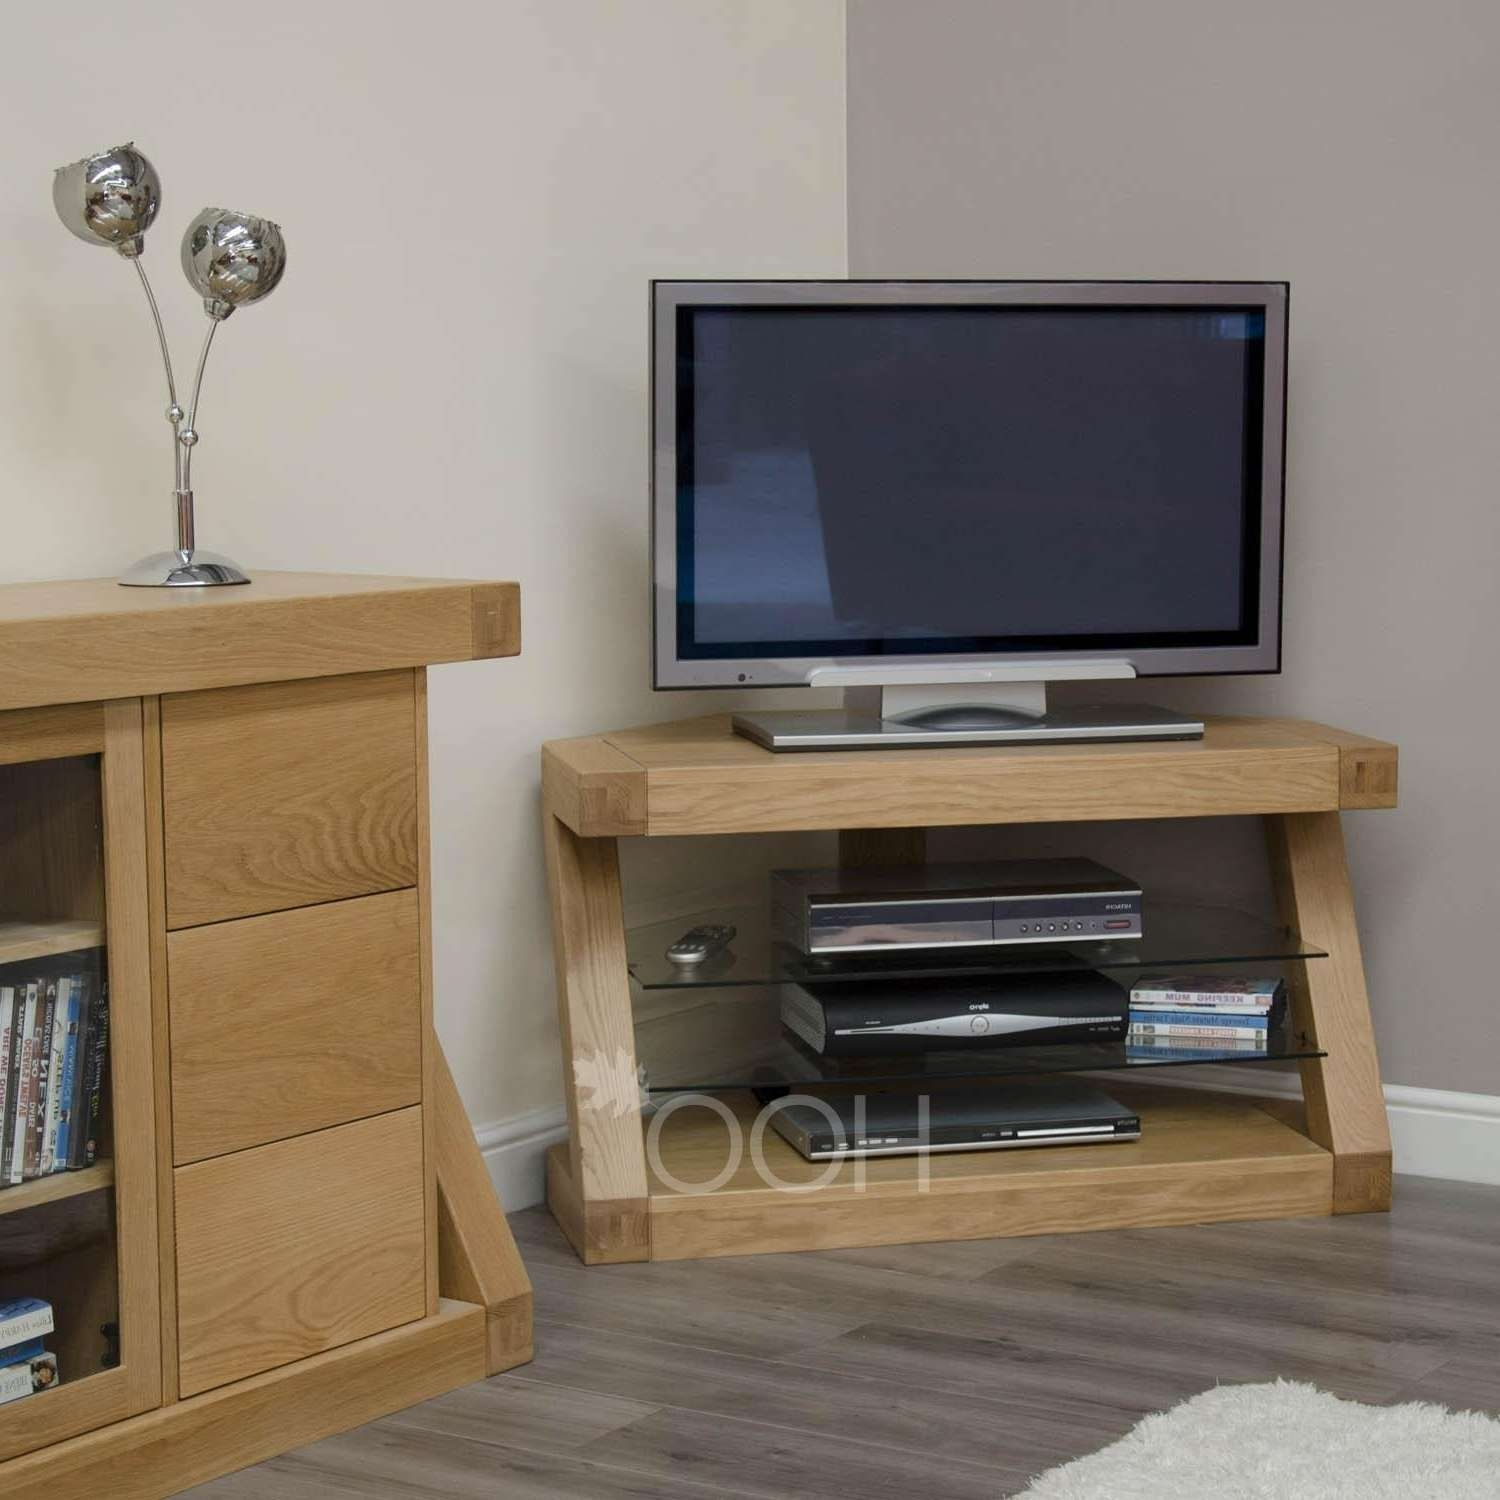 Tv : Tv Stands 100Cm Wide Startling Wooden Tv Stand 100Cm Wide Regarding 100Cm Tv Stands (View 12 of 15)